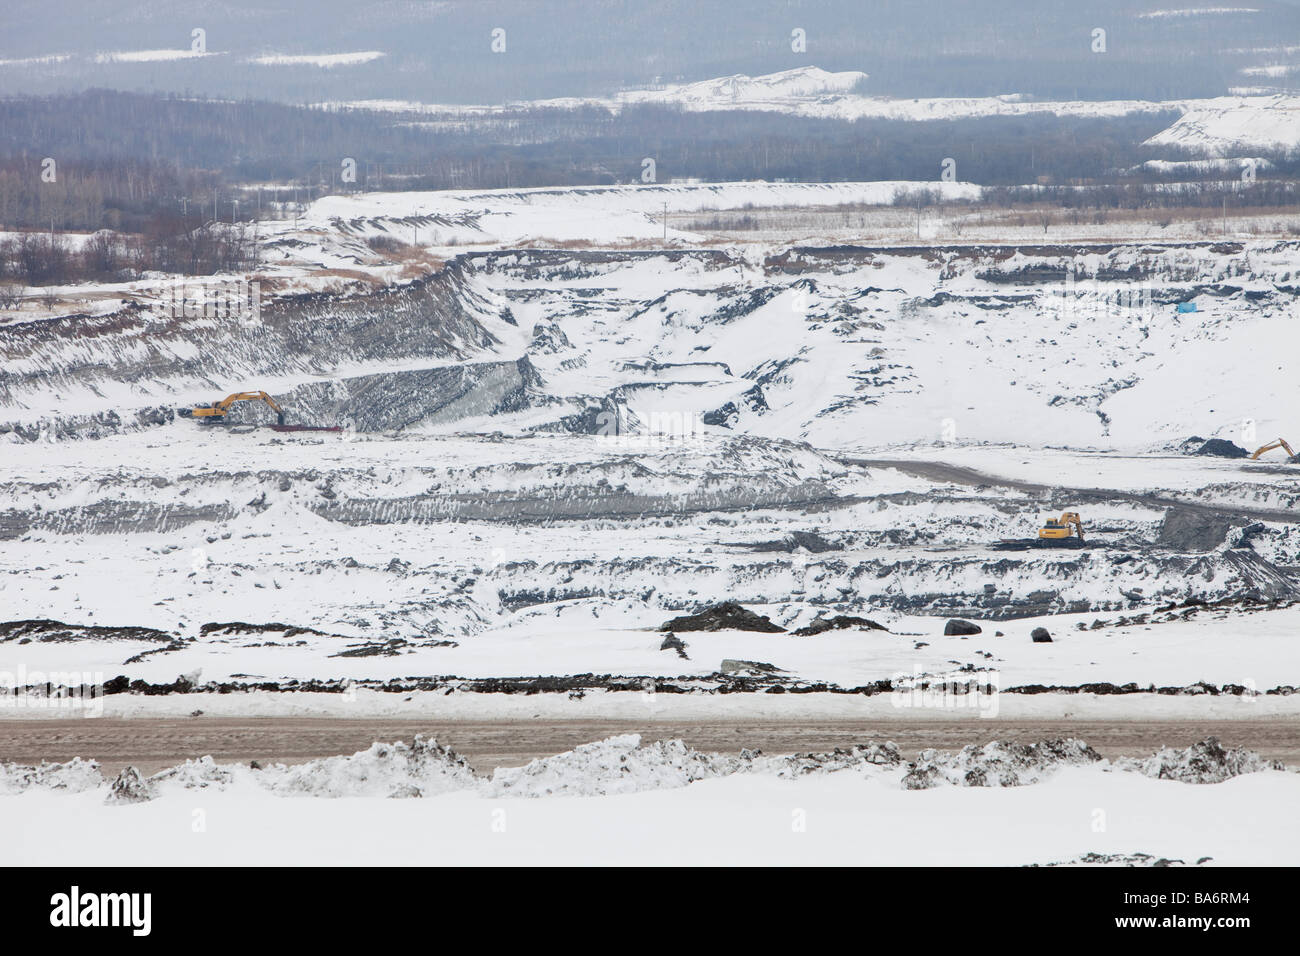 low grade coal being extracted from an open cast coal mine near Heihe on the Chinese Russian border. Stock Photo